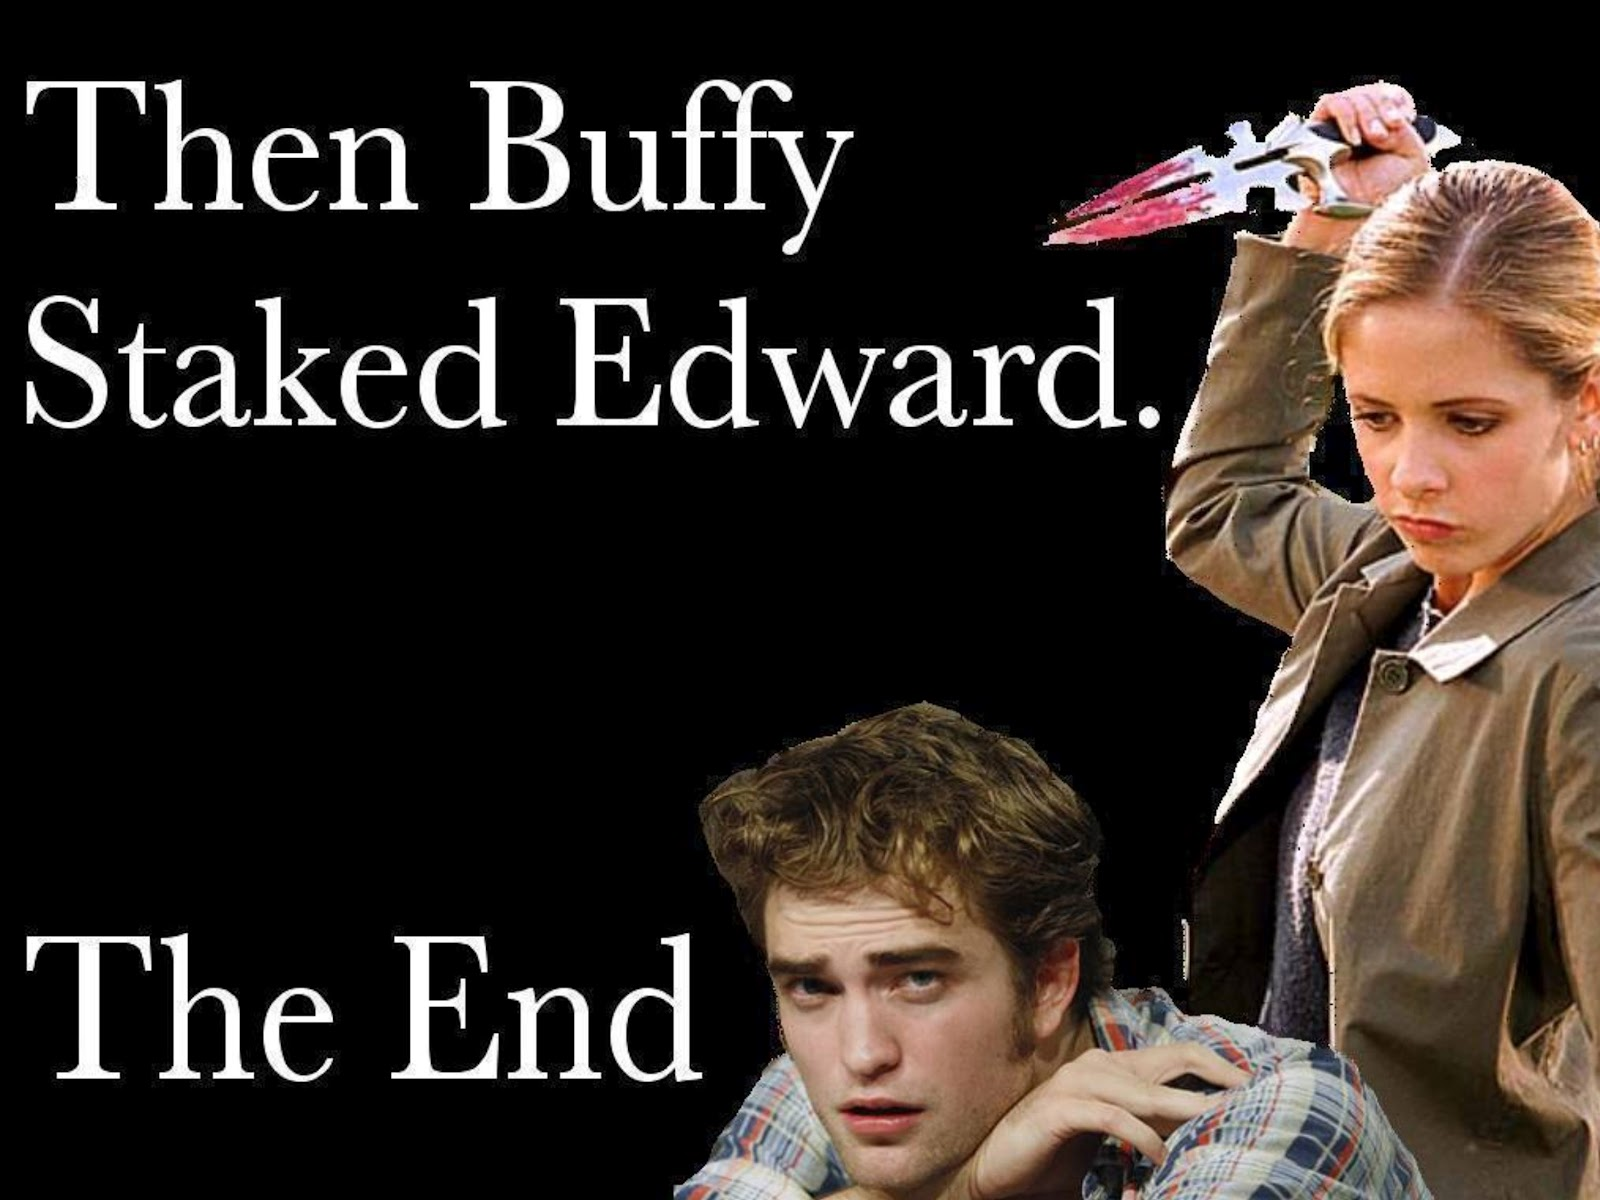 [Image: Buffy_Staked_Edward__The_End_by_indirox.jpg]